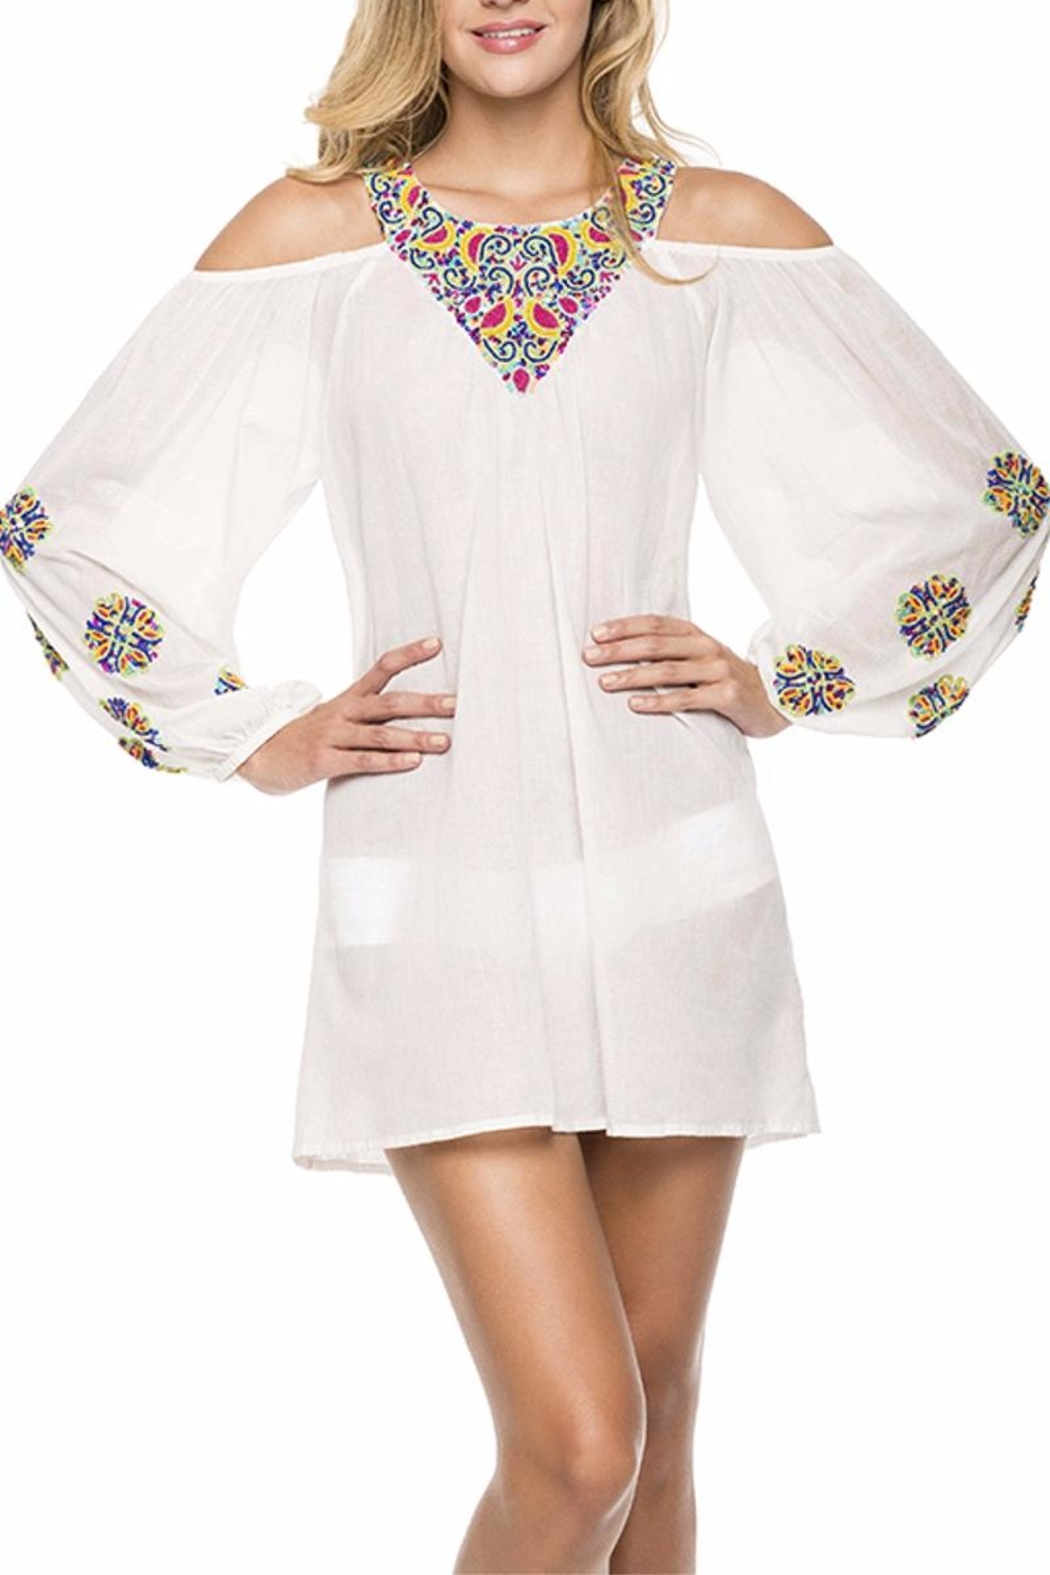 Onda de Mar Embroidered Tunic - Main Image